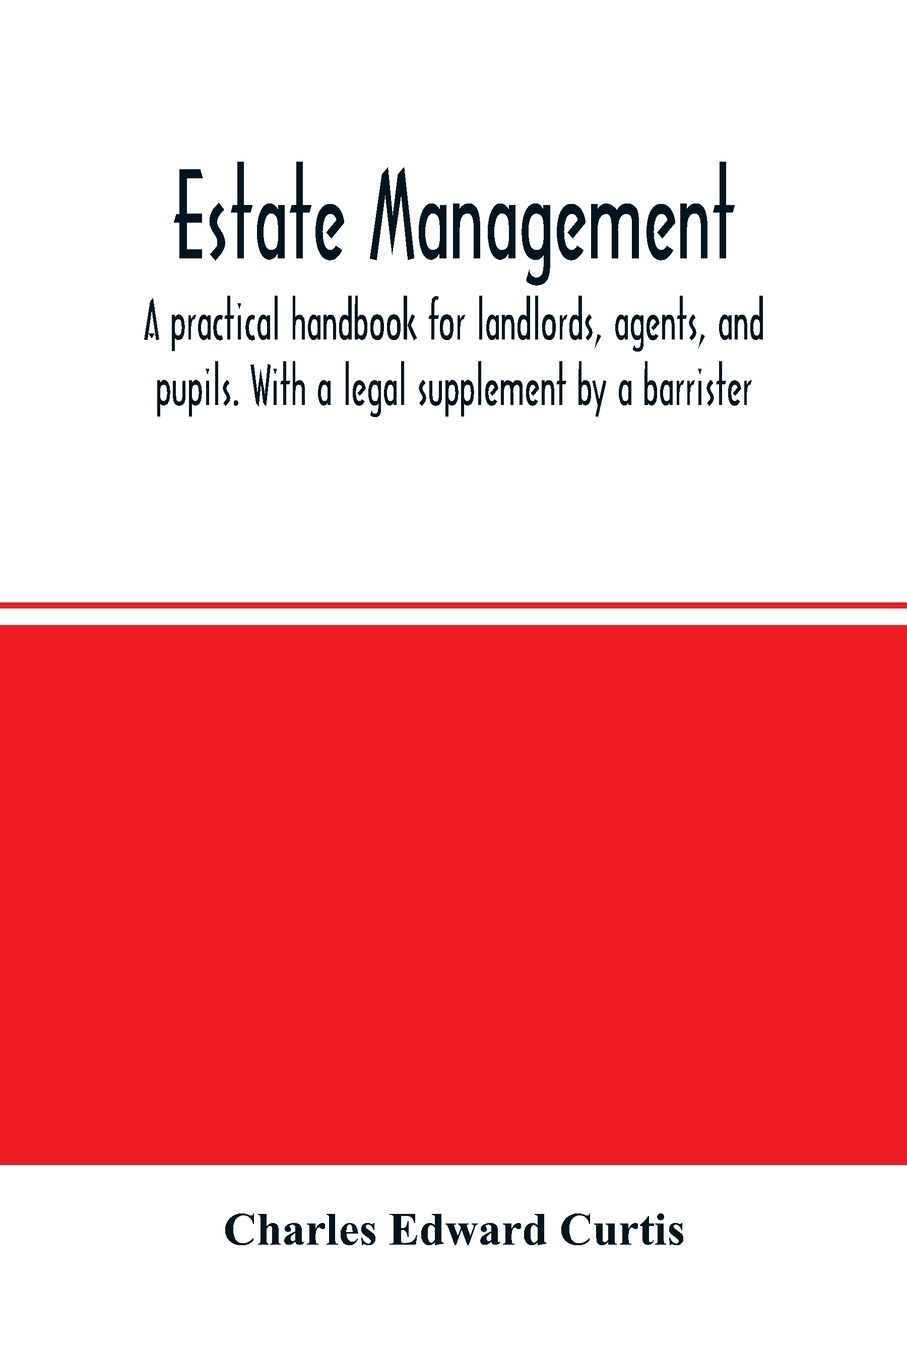 Charles Edward Curtis. Estate management. a practical handbook for landlords, agents, and pupils. With a legal supplement by a barrister